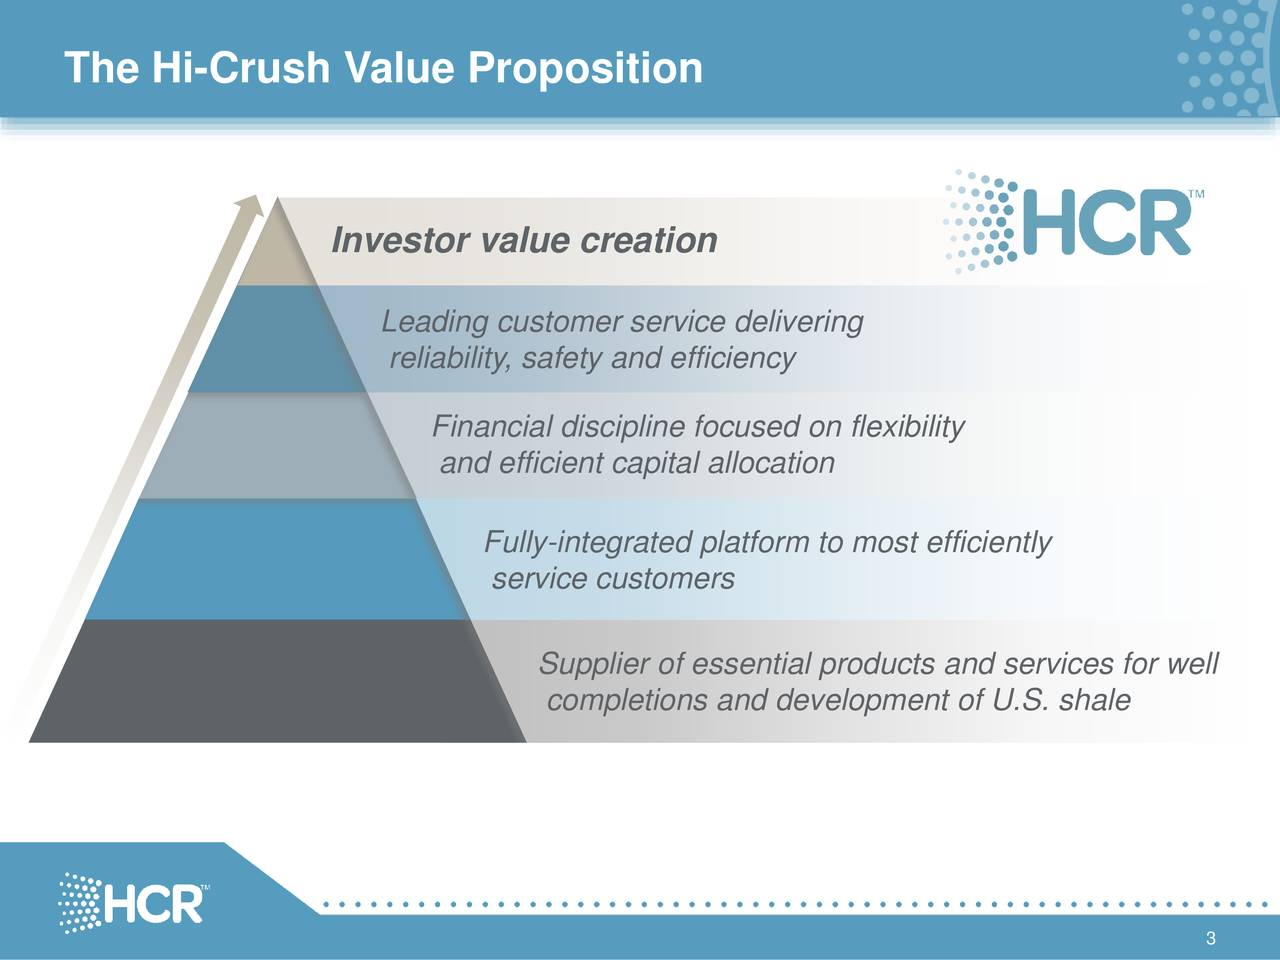 The Hi-Crush Value Proposition